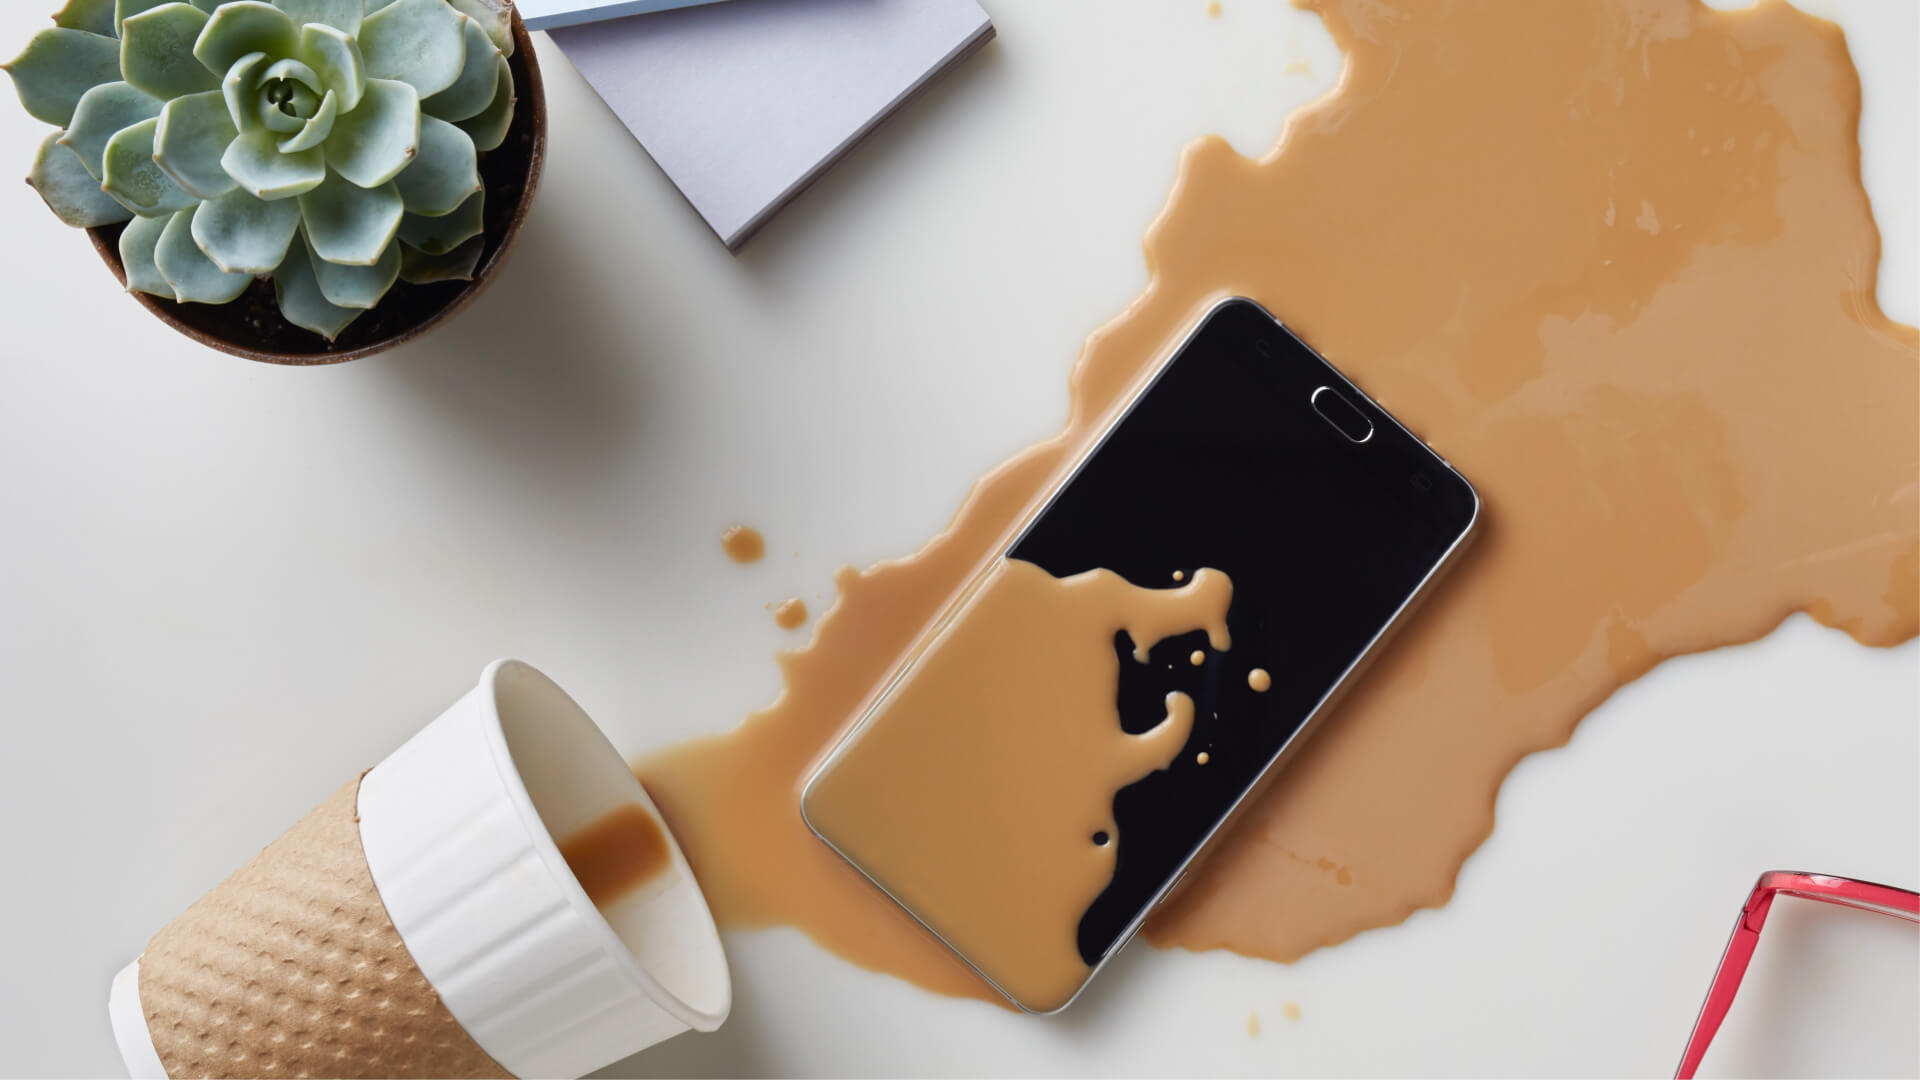 Coffee spilled on phone